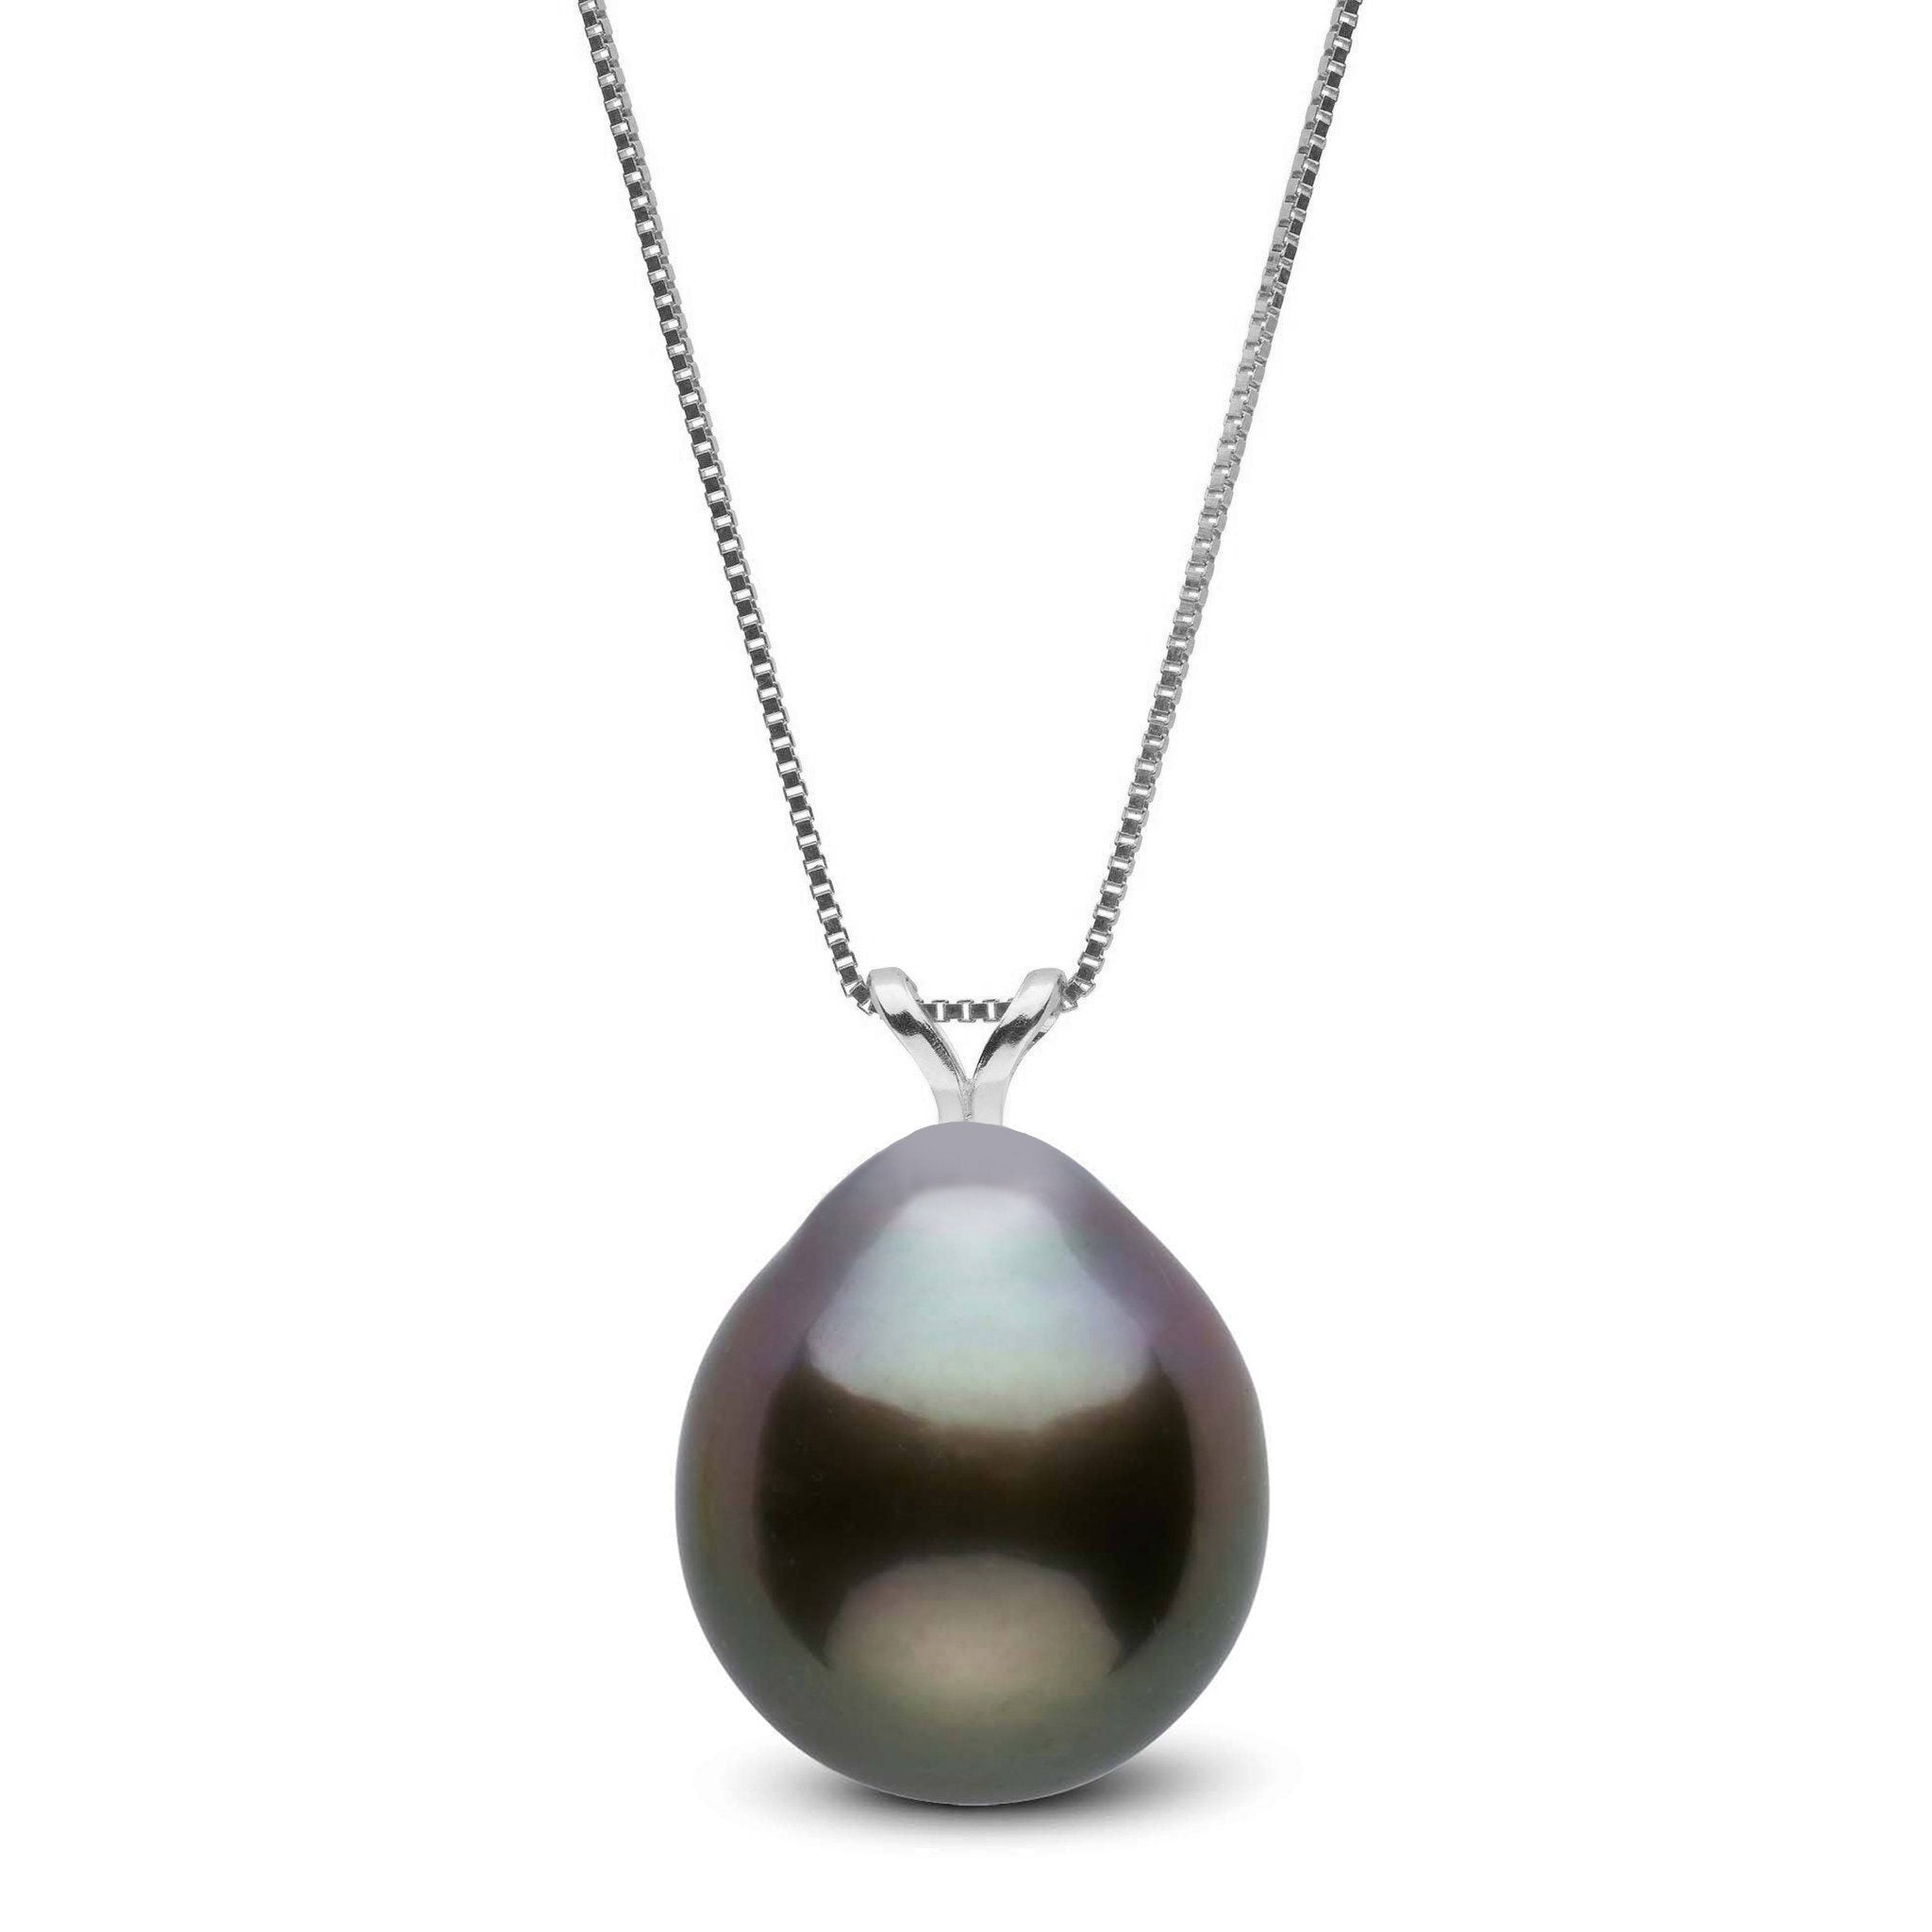 Unity Collection 11.0-12.0 mm Drop Tahitian Pearl Pendant